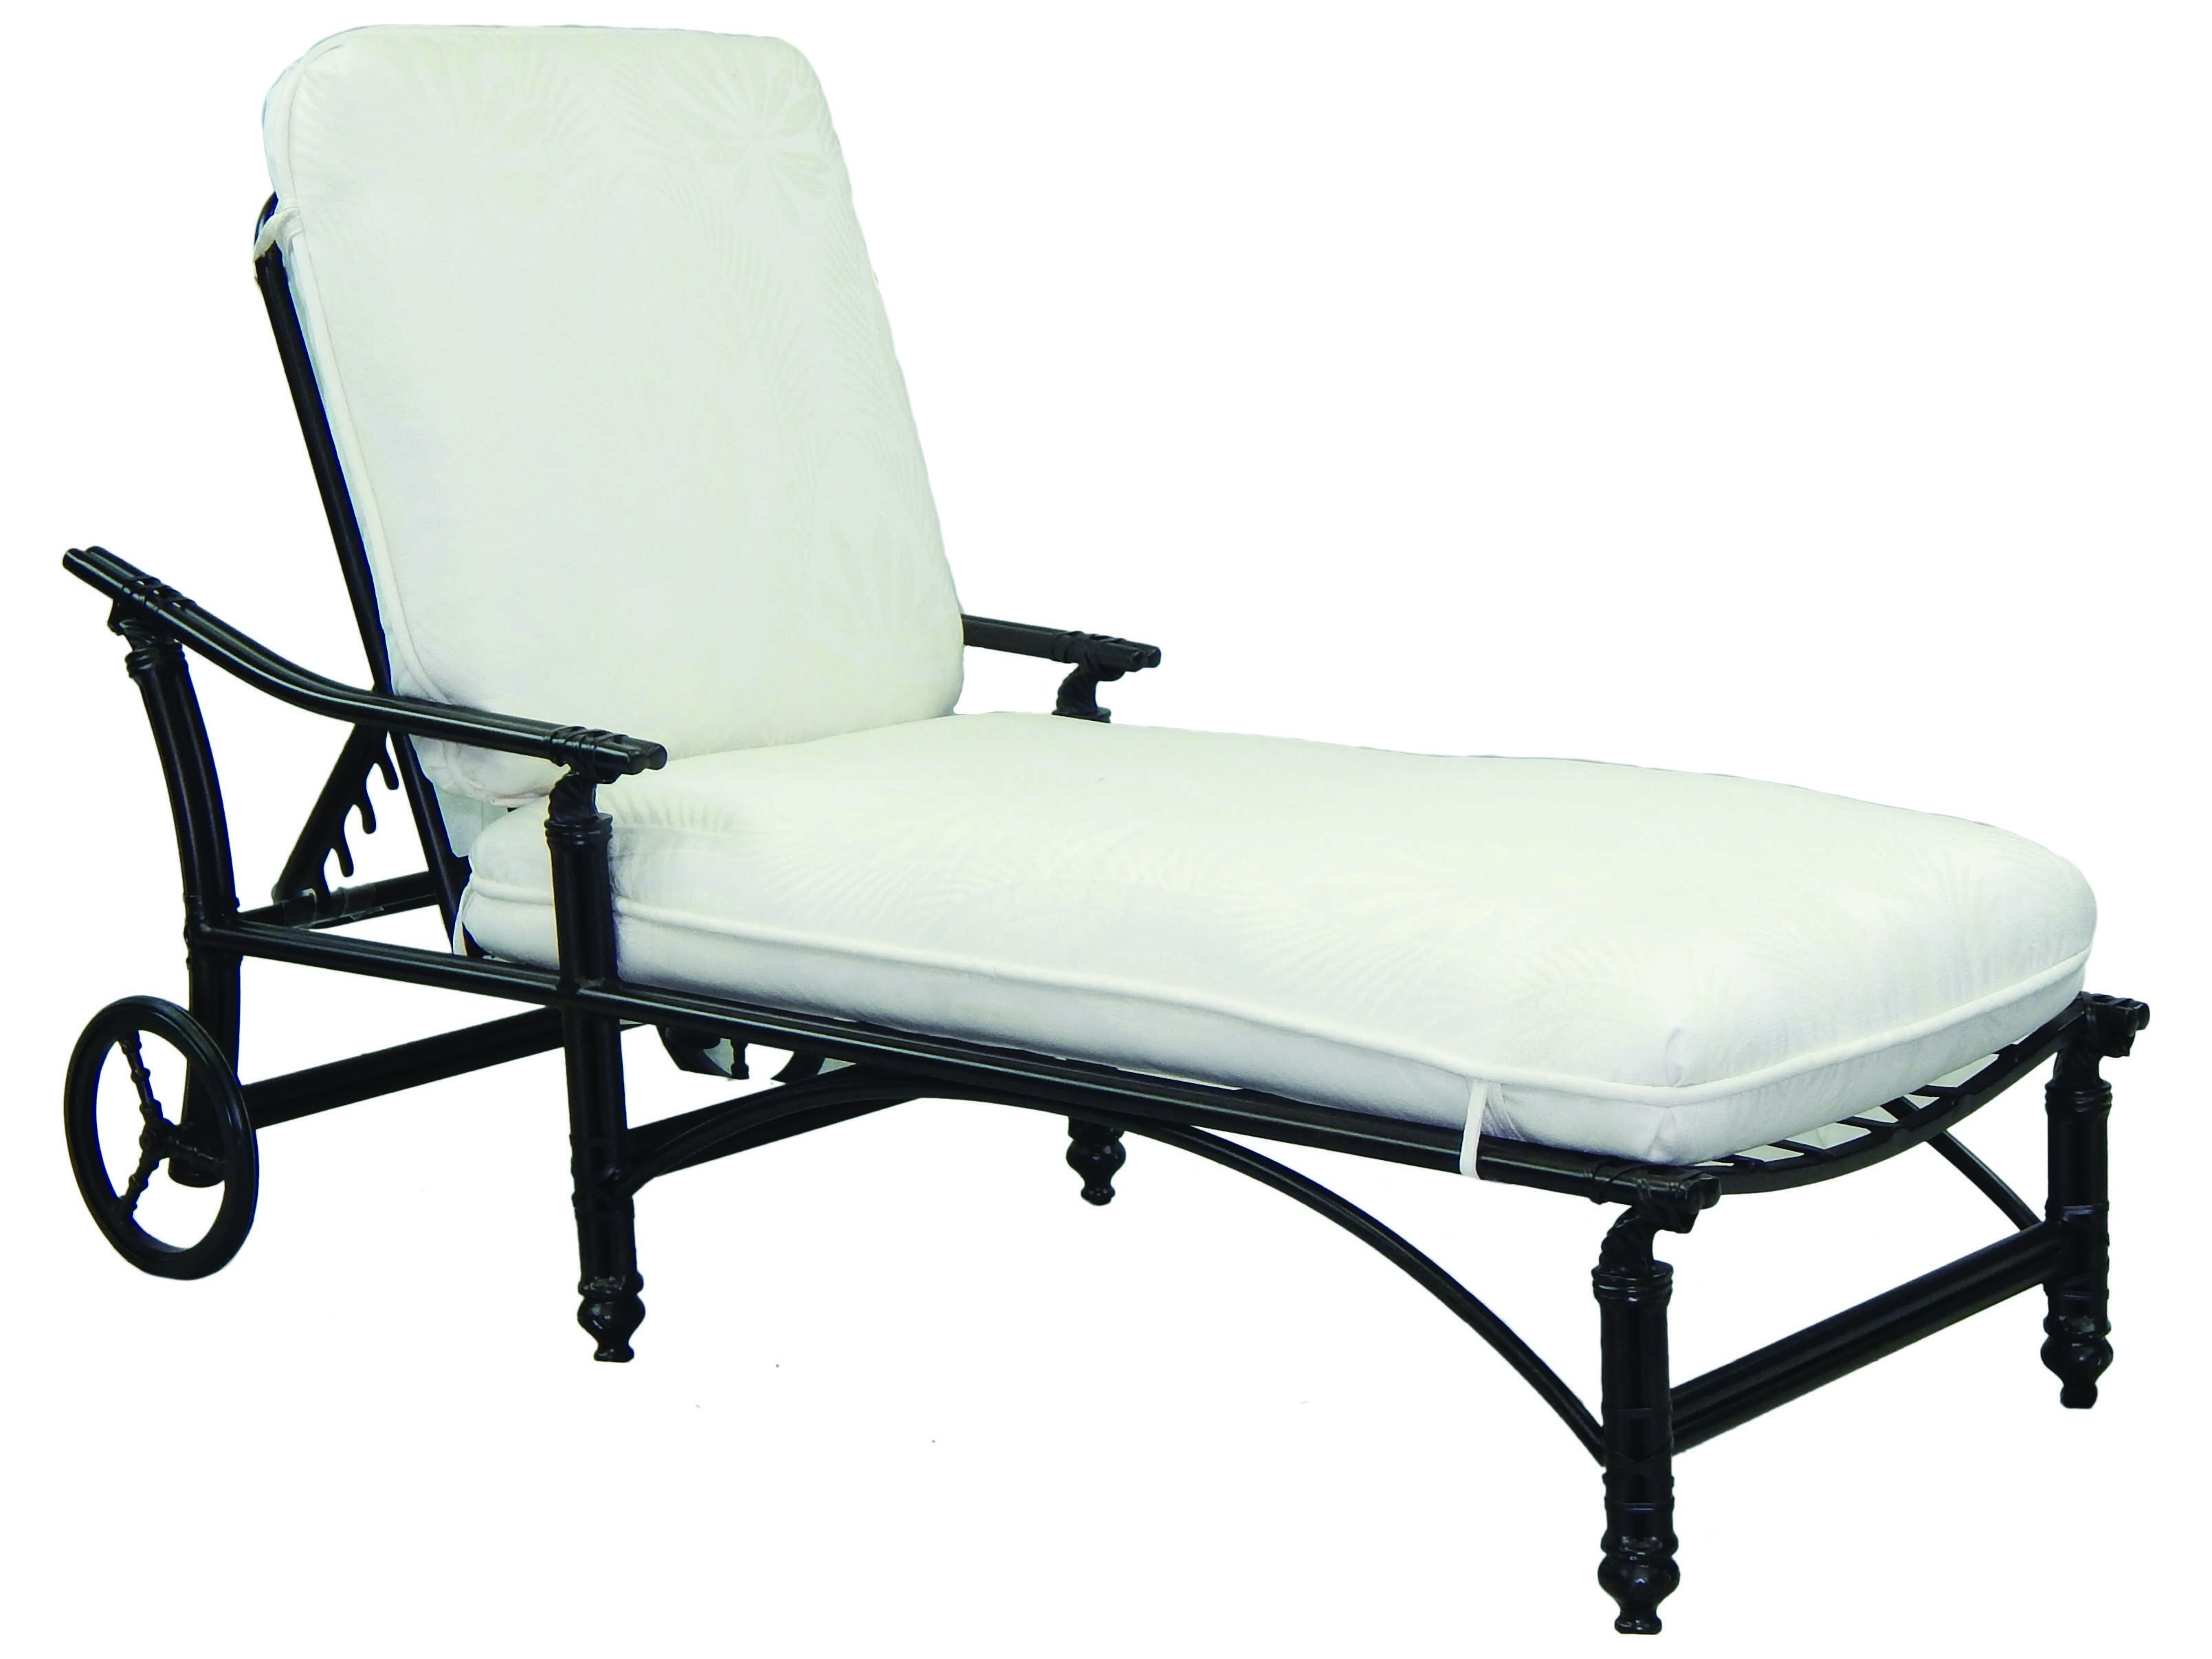 Castelle coco isle cushion cast aluminum adjustable chaise for Aluminum chaise lounge with wheels